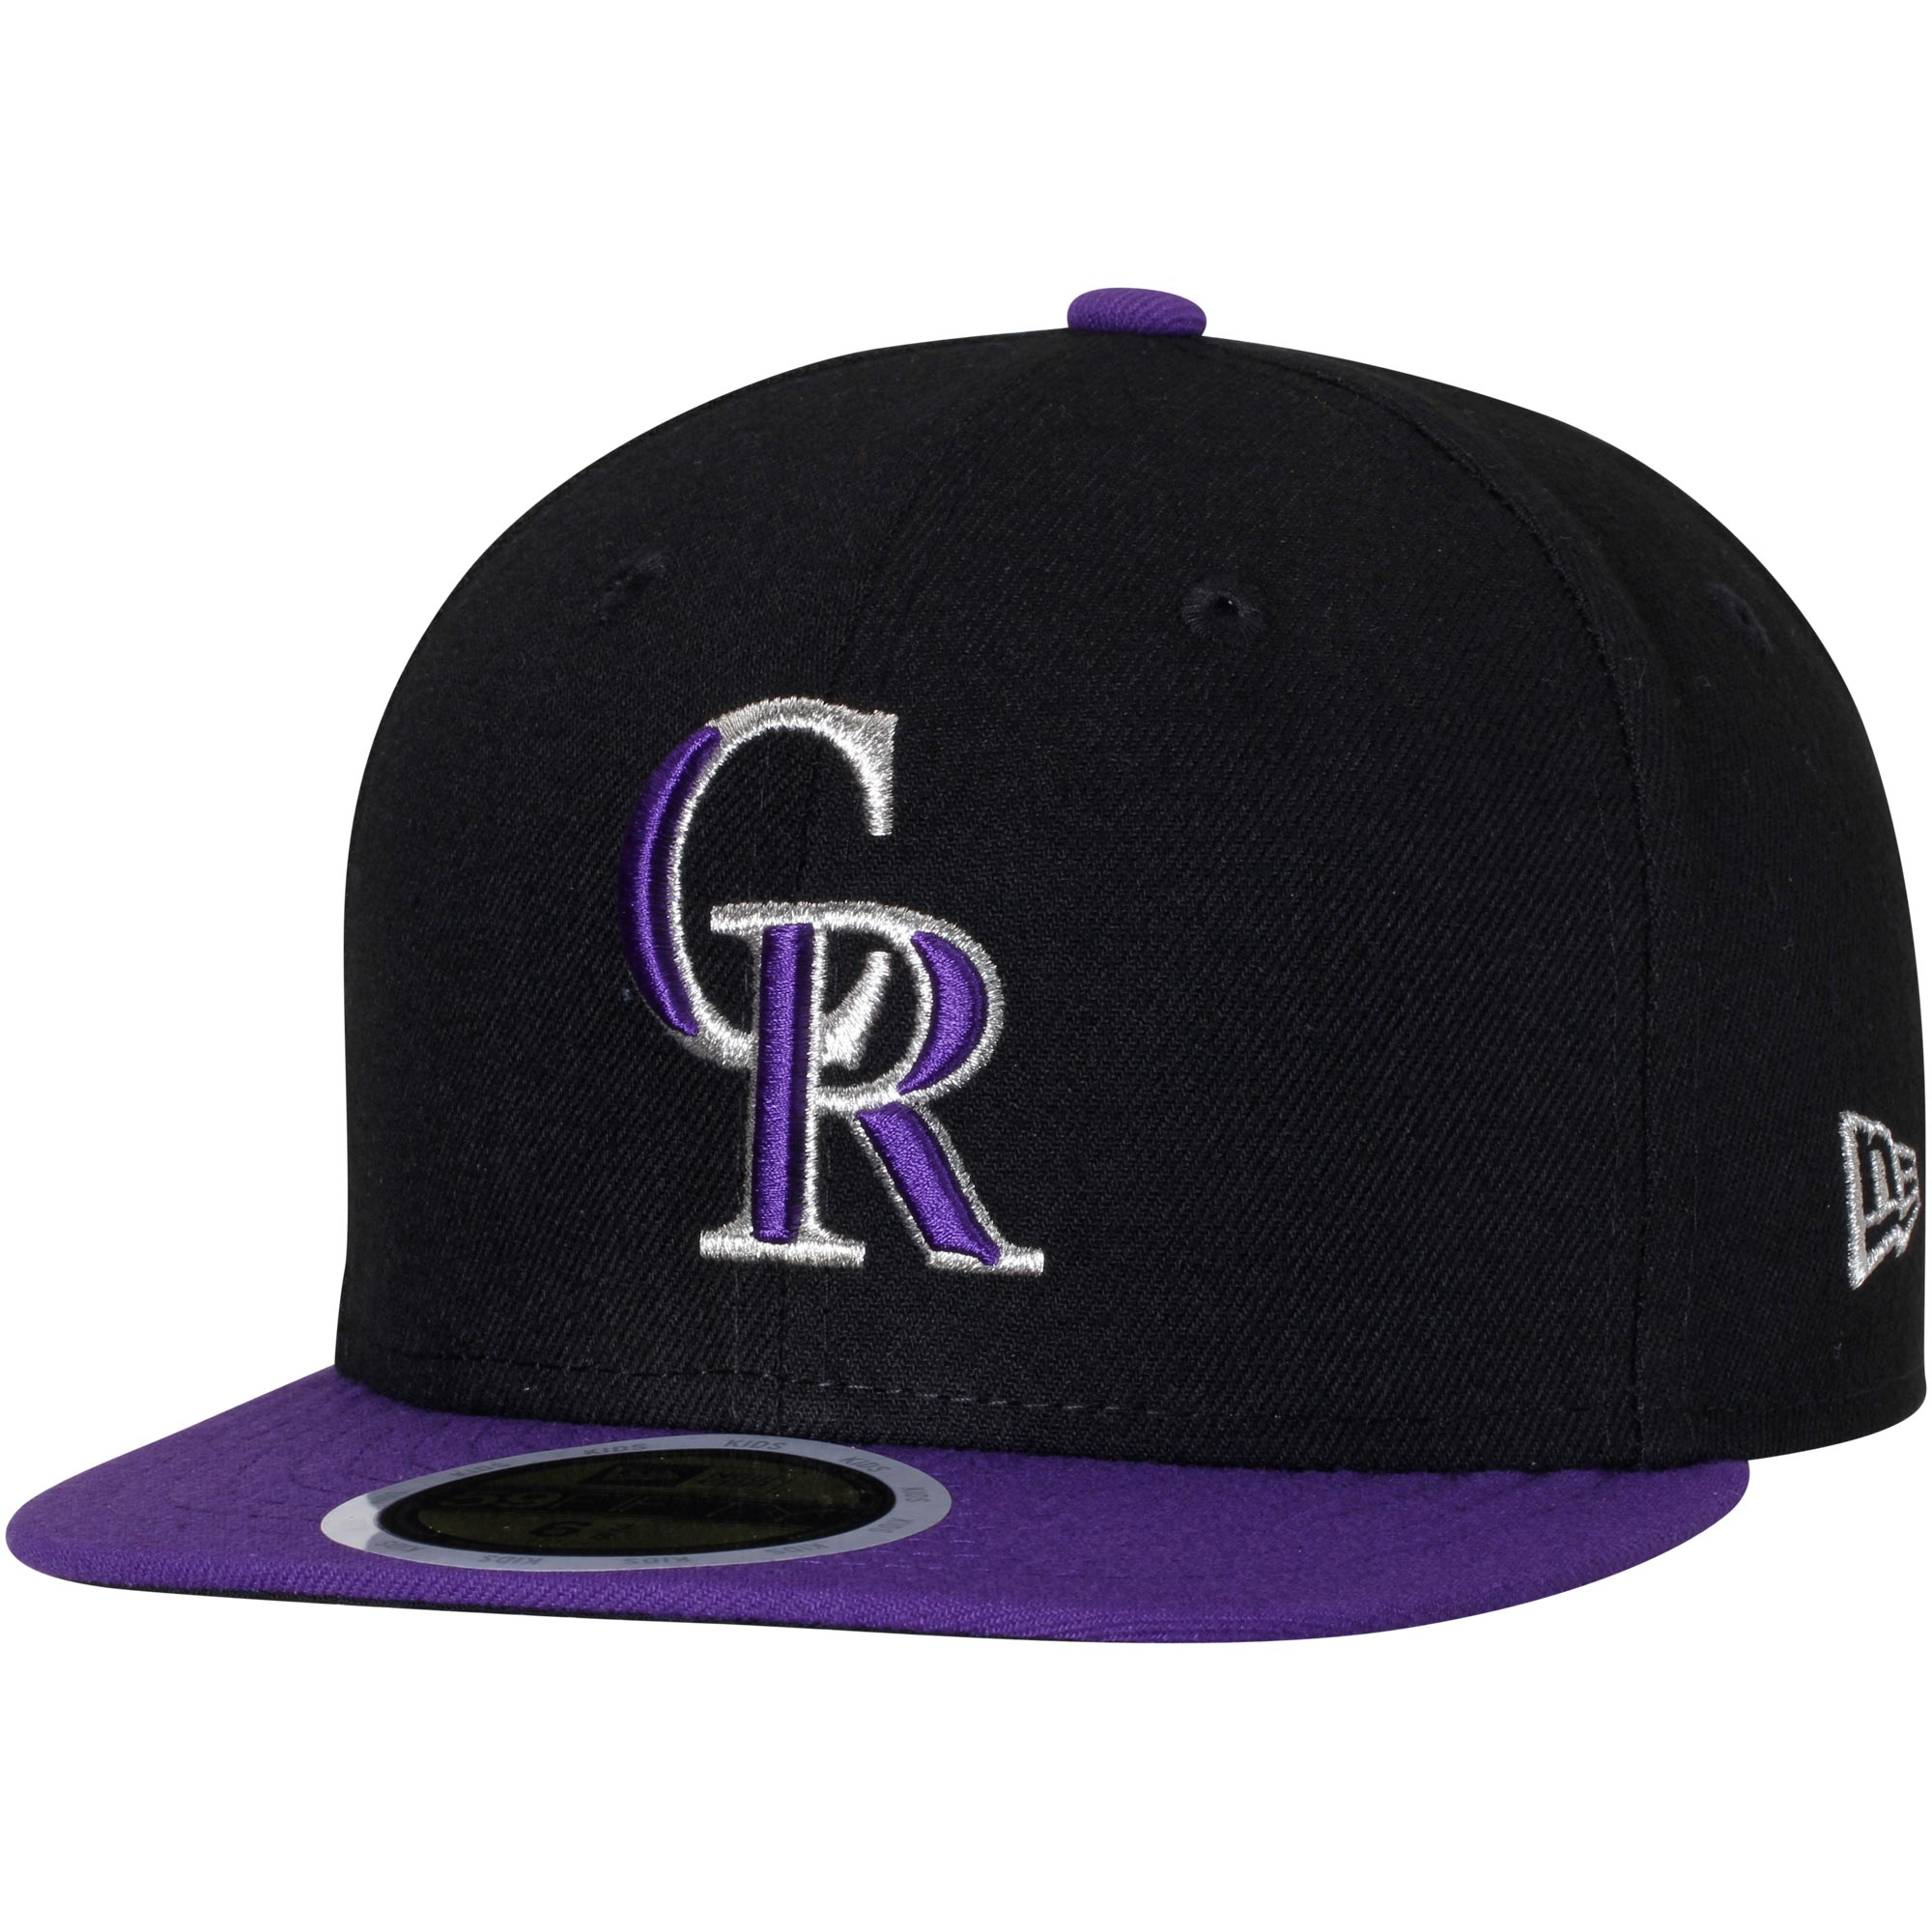 Colorado Rockies New Era Youth Authentic Collection On-Field Alternate 59FIFTY Fitted Hat - Black/Purple